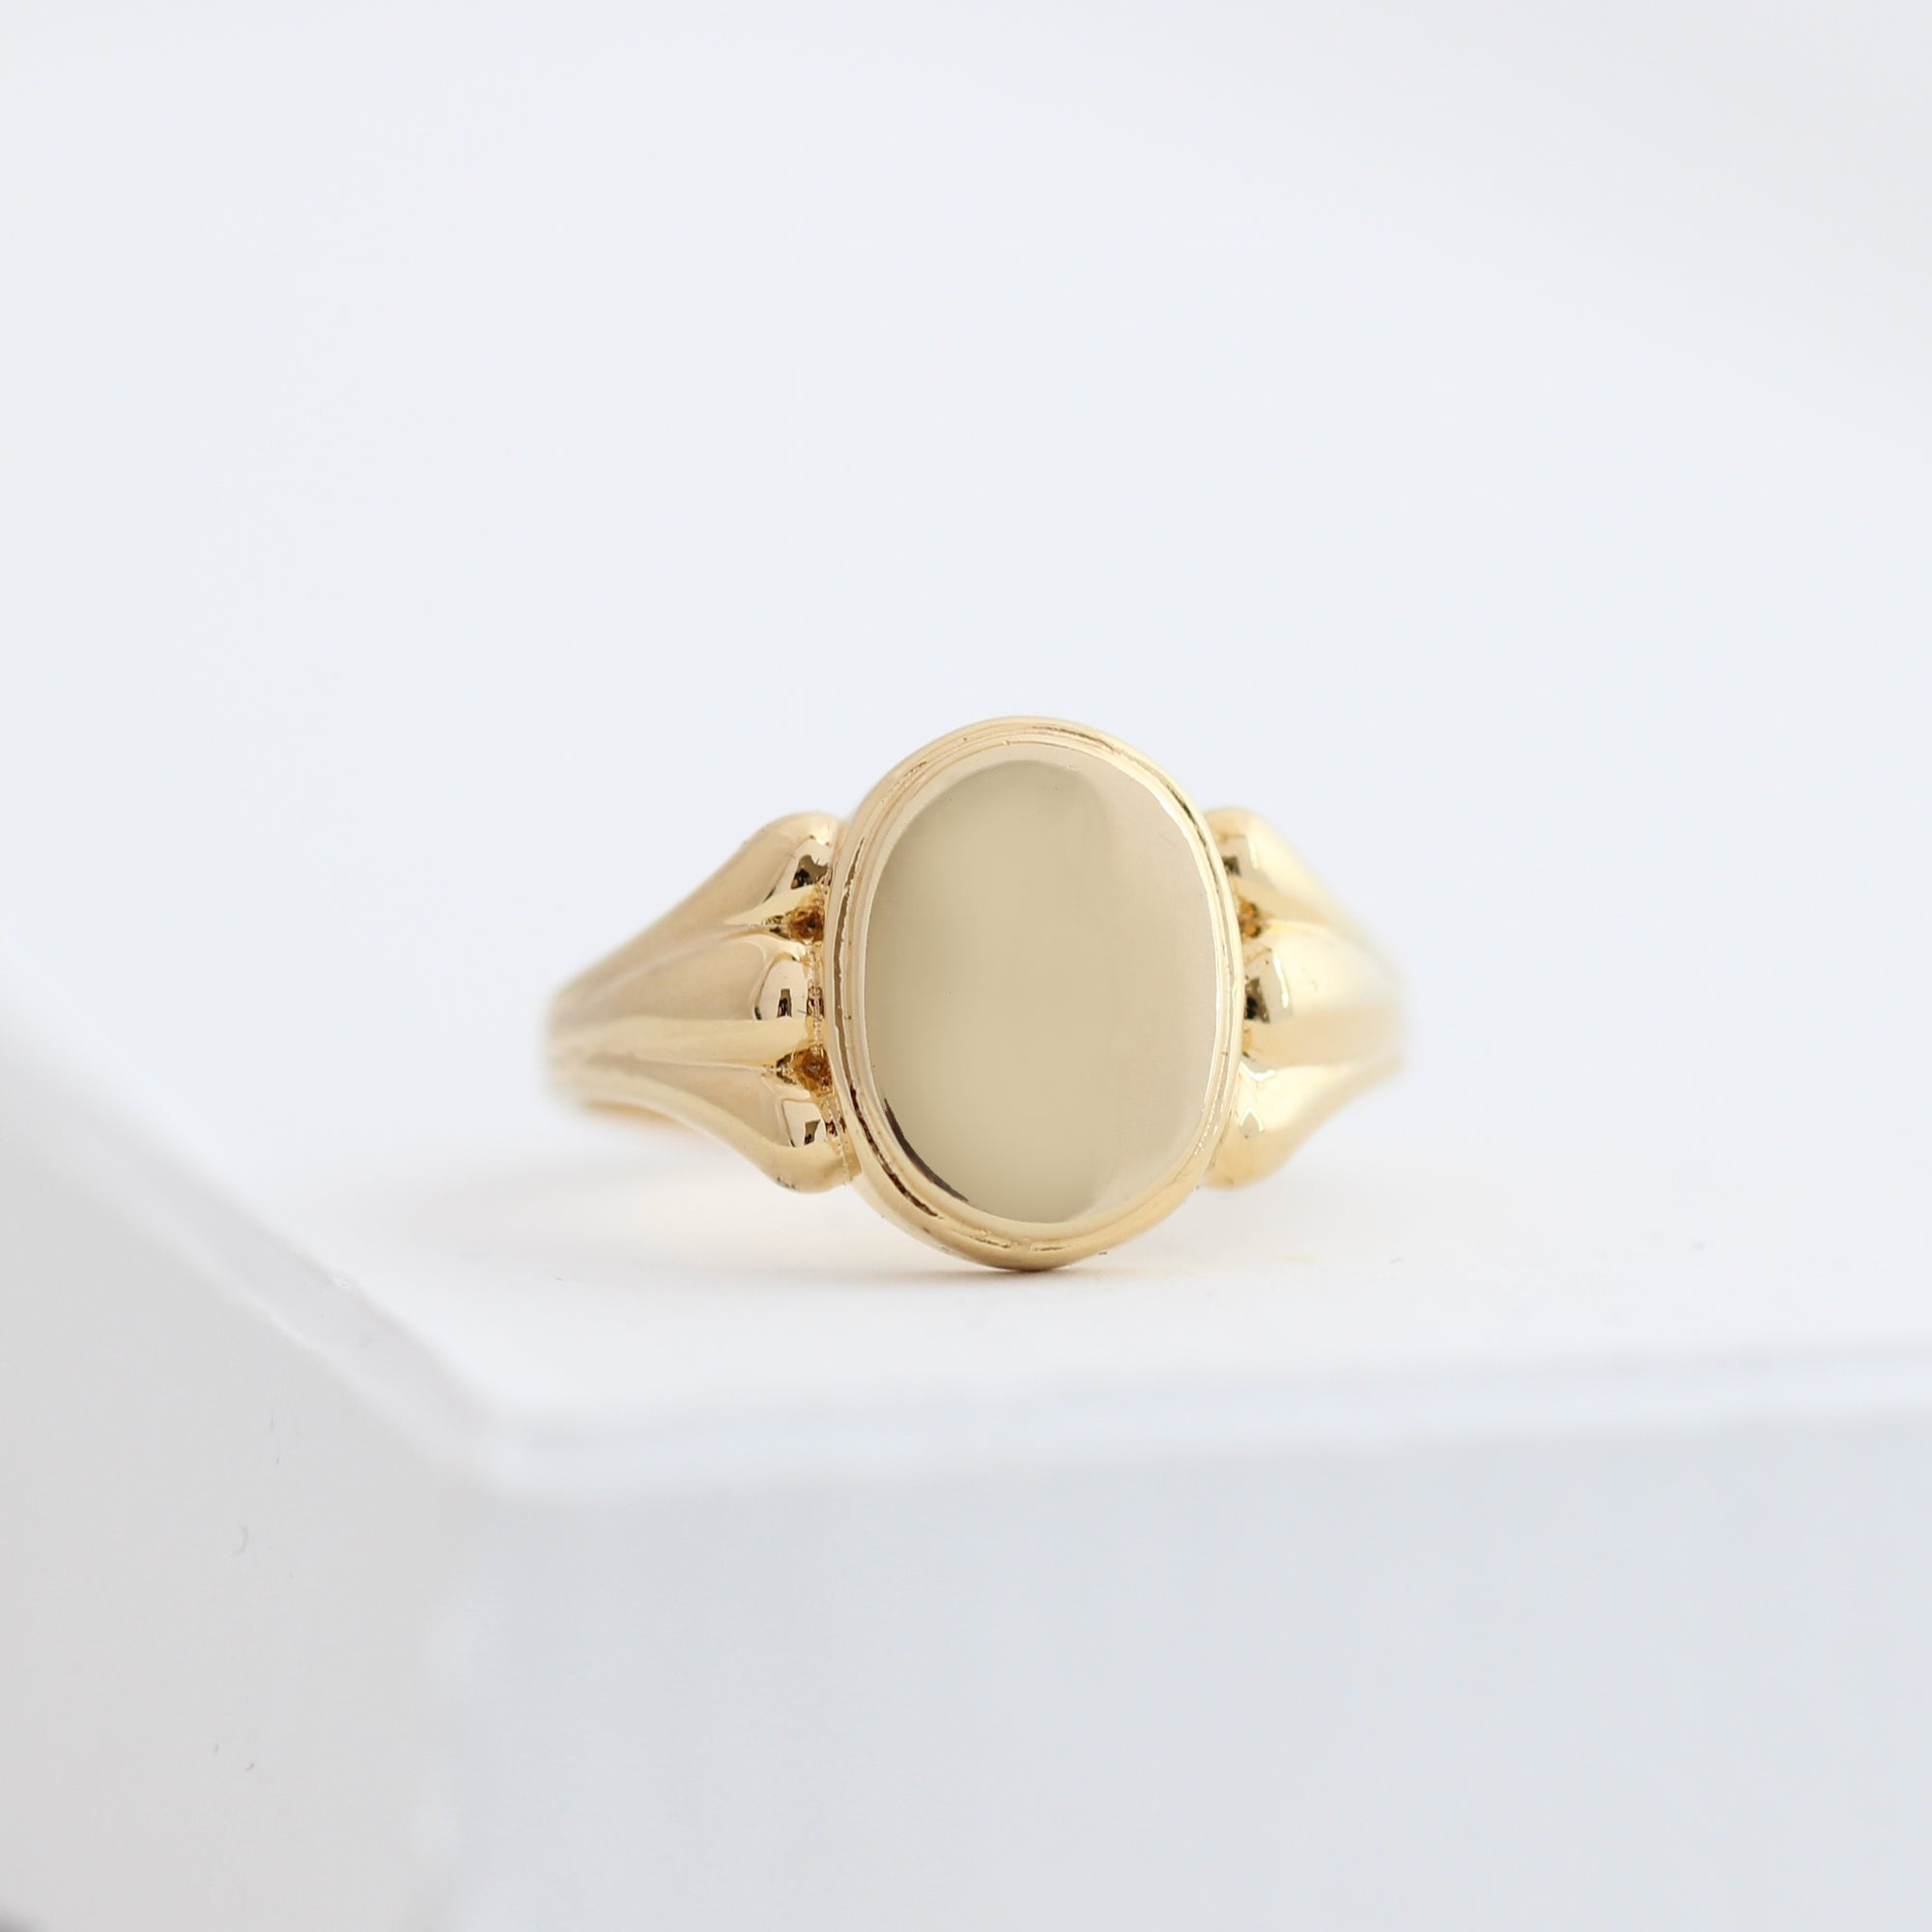 14k Gold Pinky Signet Ring